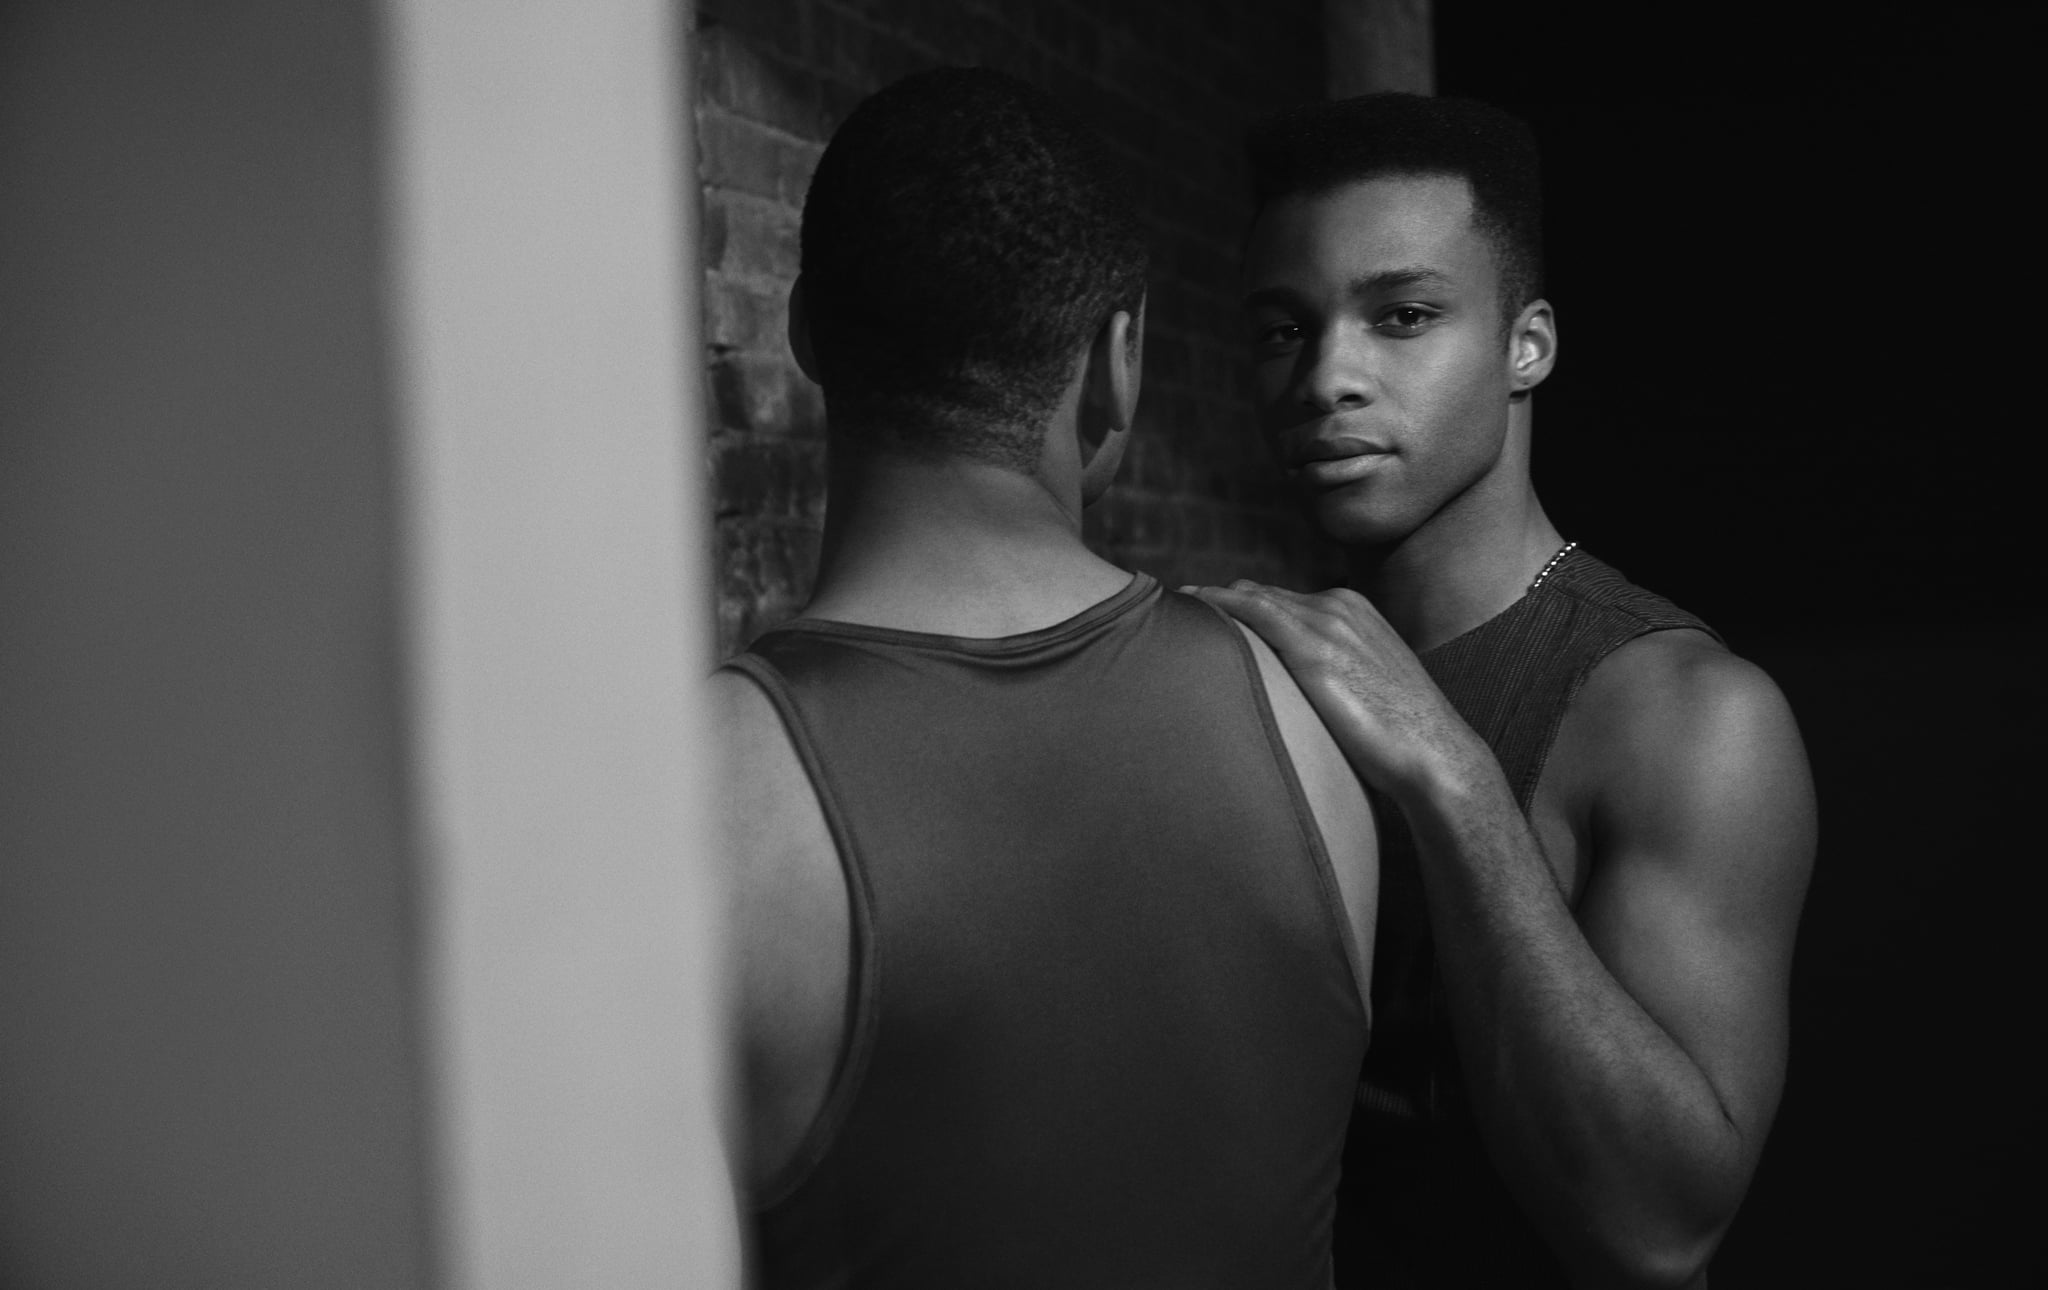 POSE -- Pictured: Dyllon Burnside as Ricky. CR: Pari Dukovic/FX